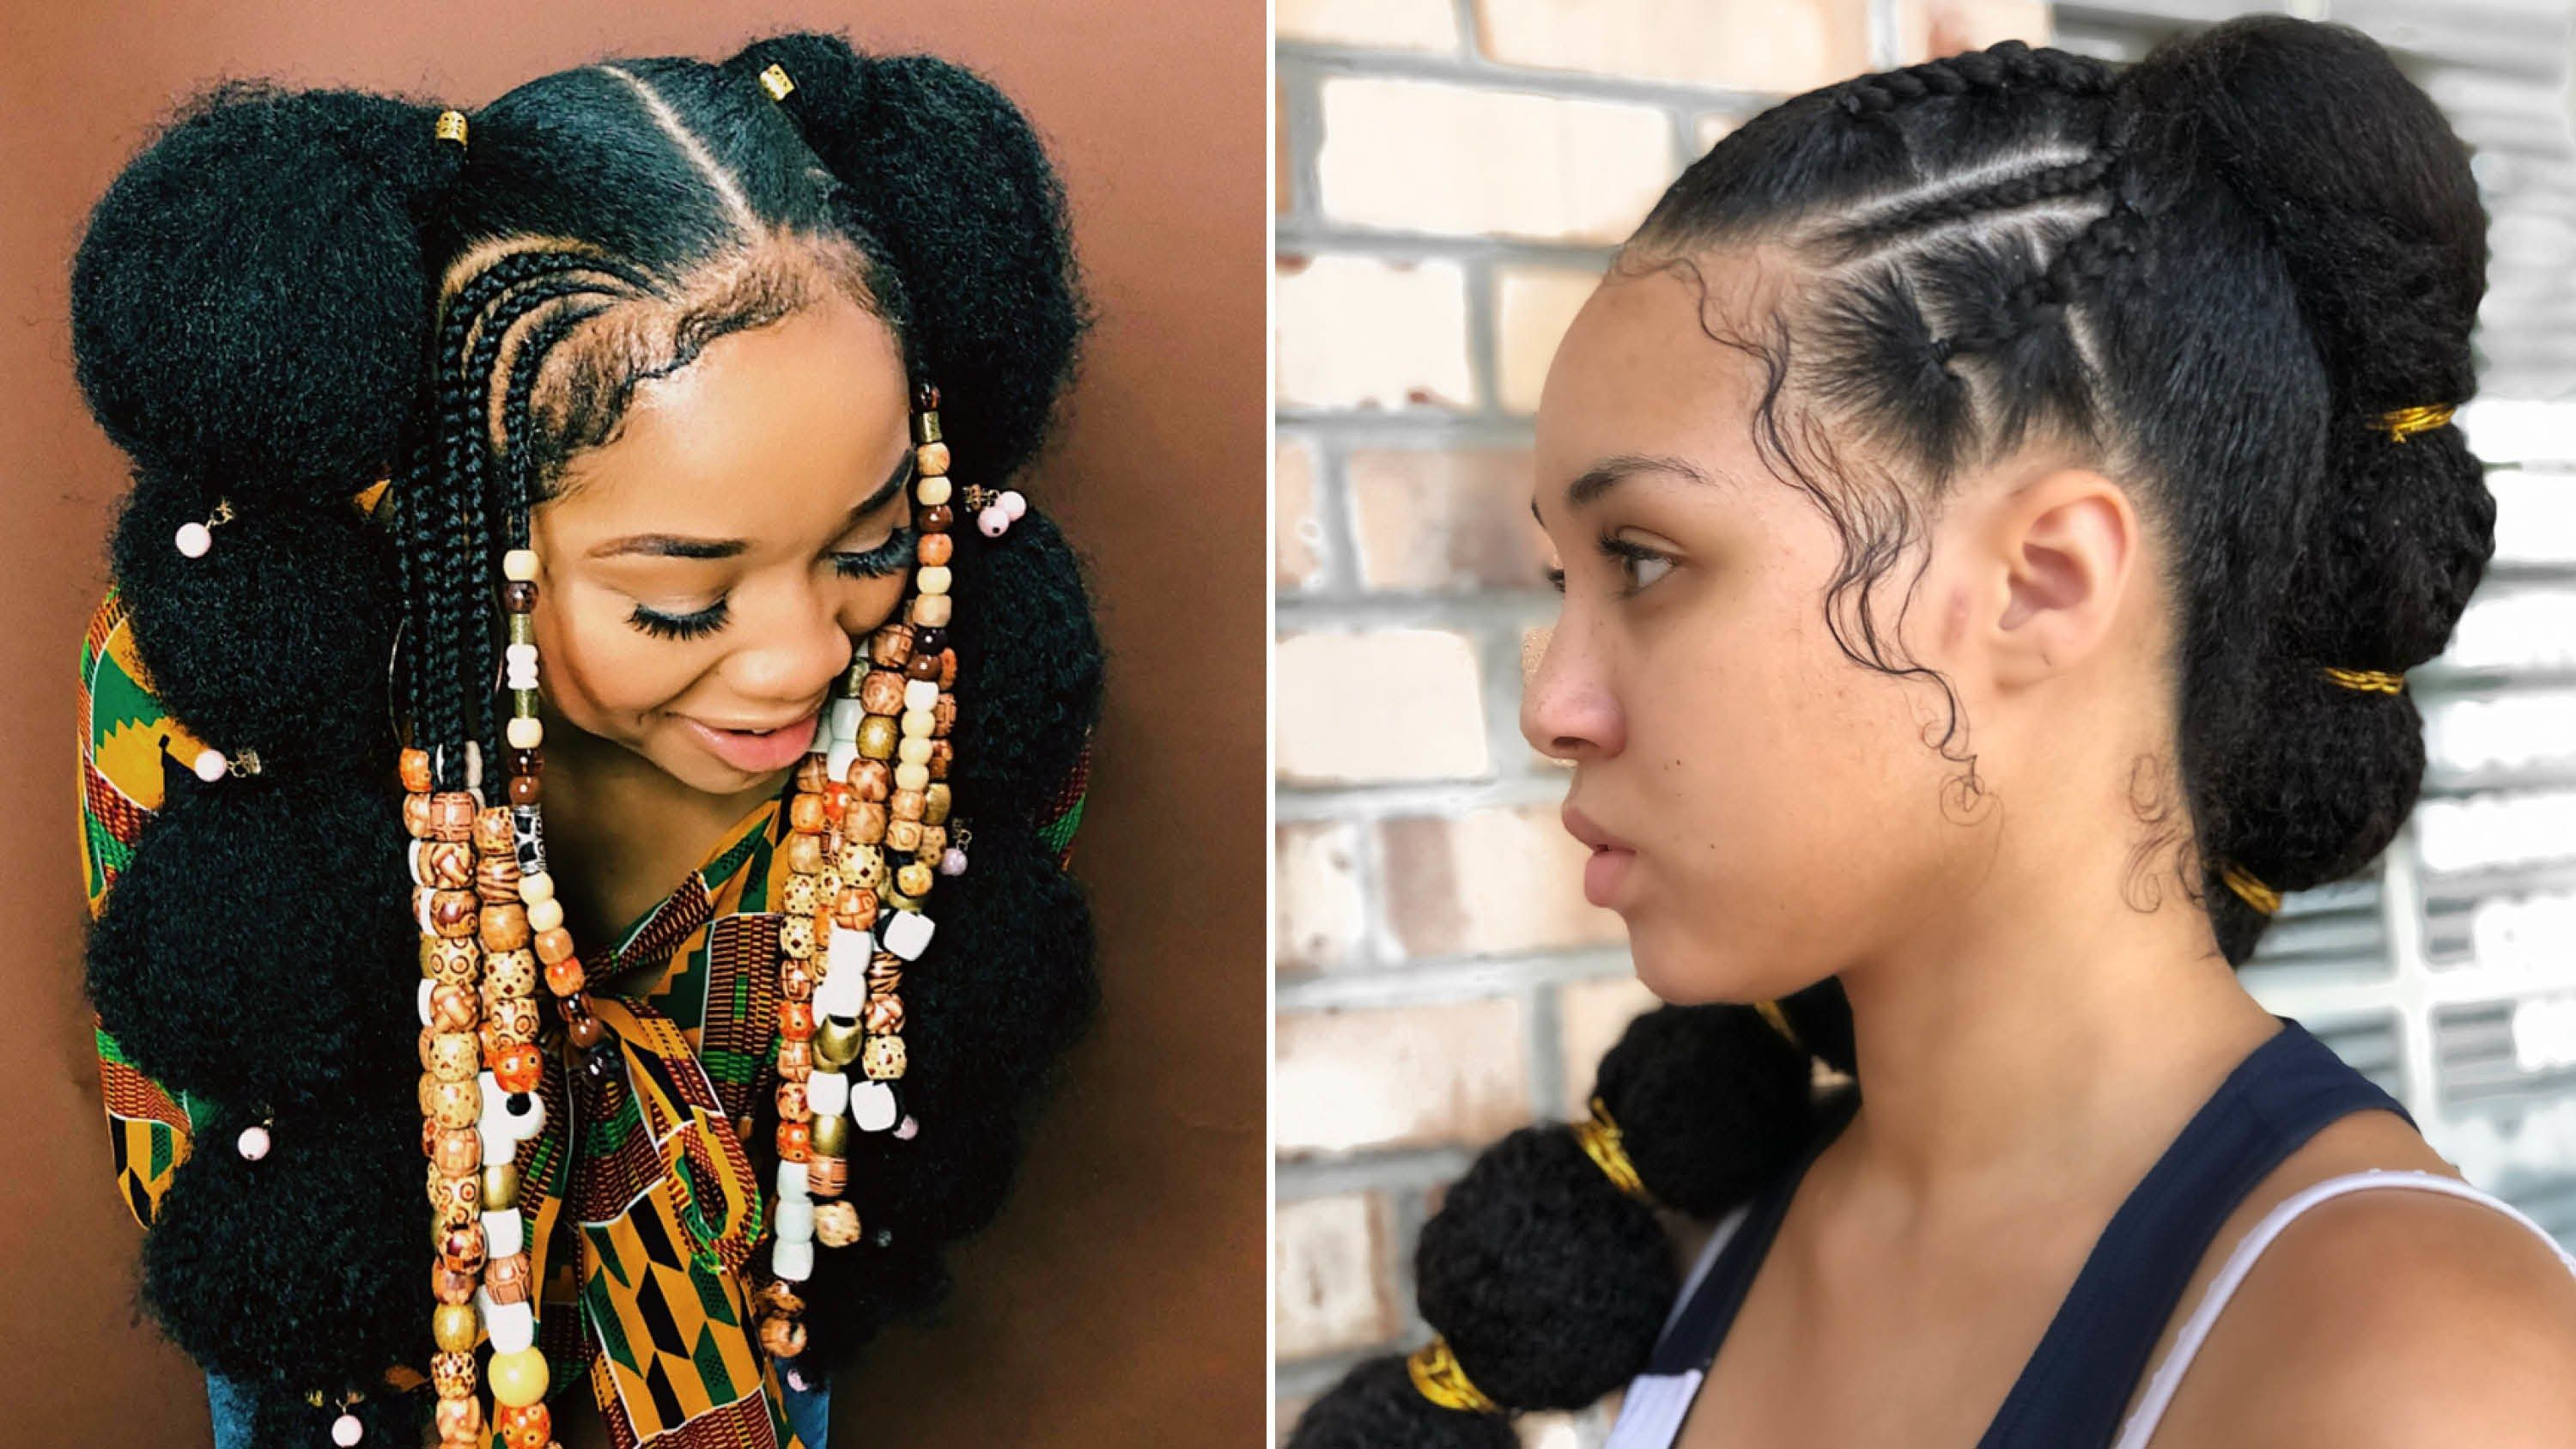 Afro Puff Bubble Ponytails Are Trending on Instagram | Hair puff, Bubble ponytail, Mixed hair